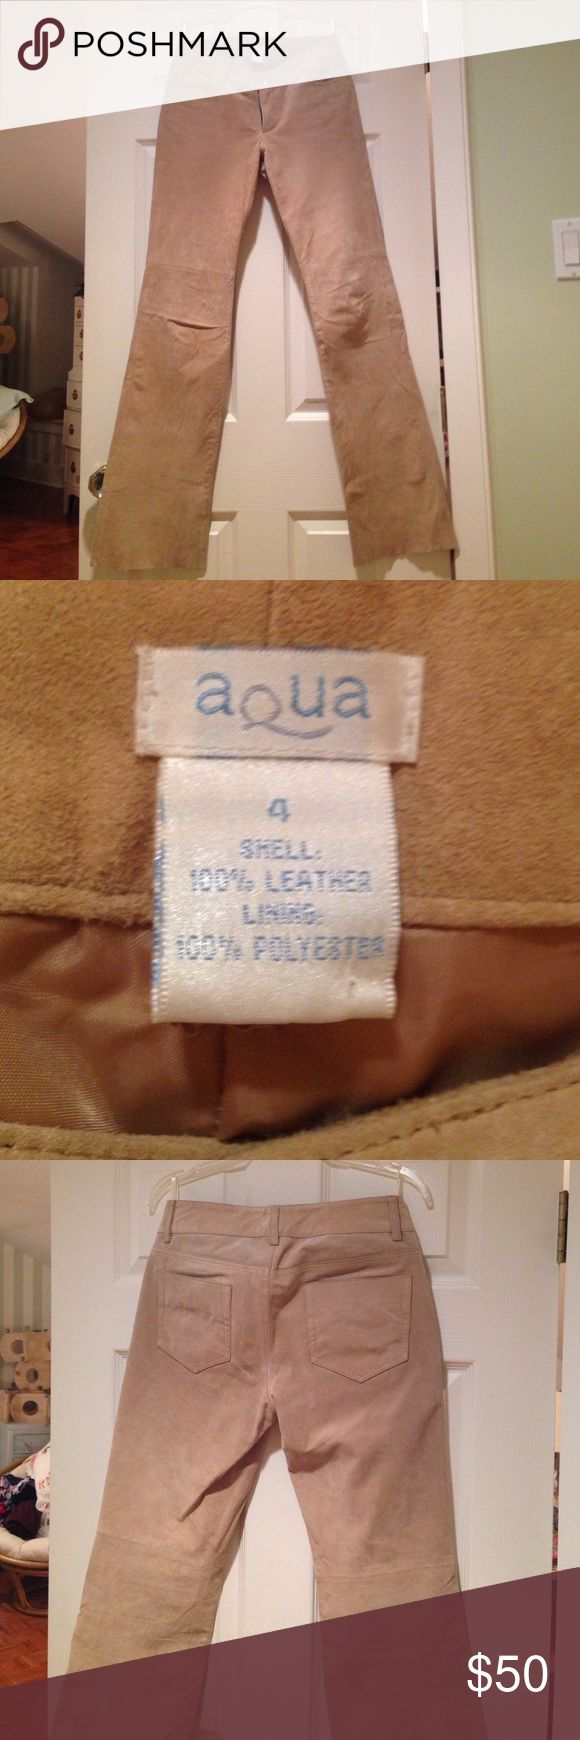 Suede genuine leather pants These lined, tan suede leather pants are in good condition. Pant legs have a blunt cut edge as pictured. Aqua Pants Wide Leg